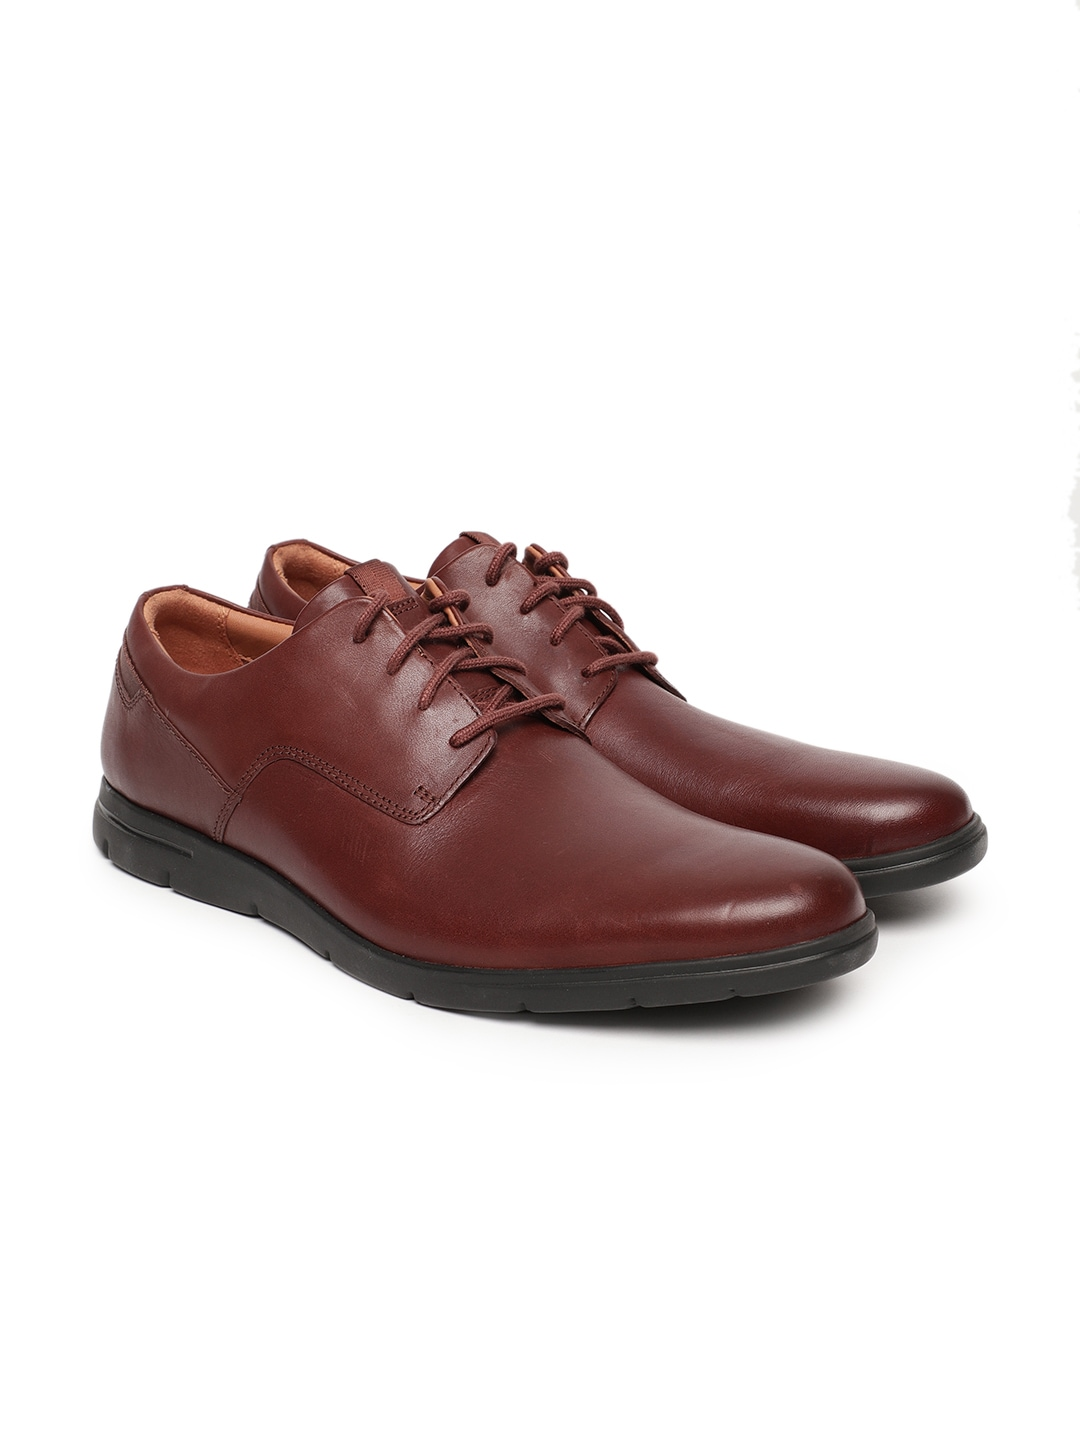 3f170131c4b CLARKS - Exclusive Clarks Shoes Online Store in India - Myntra